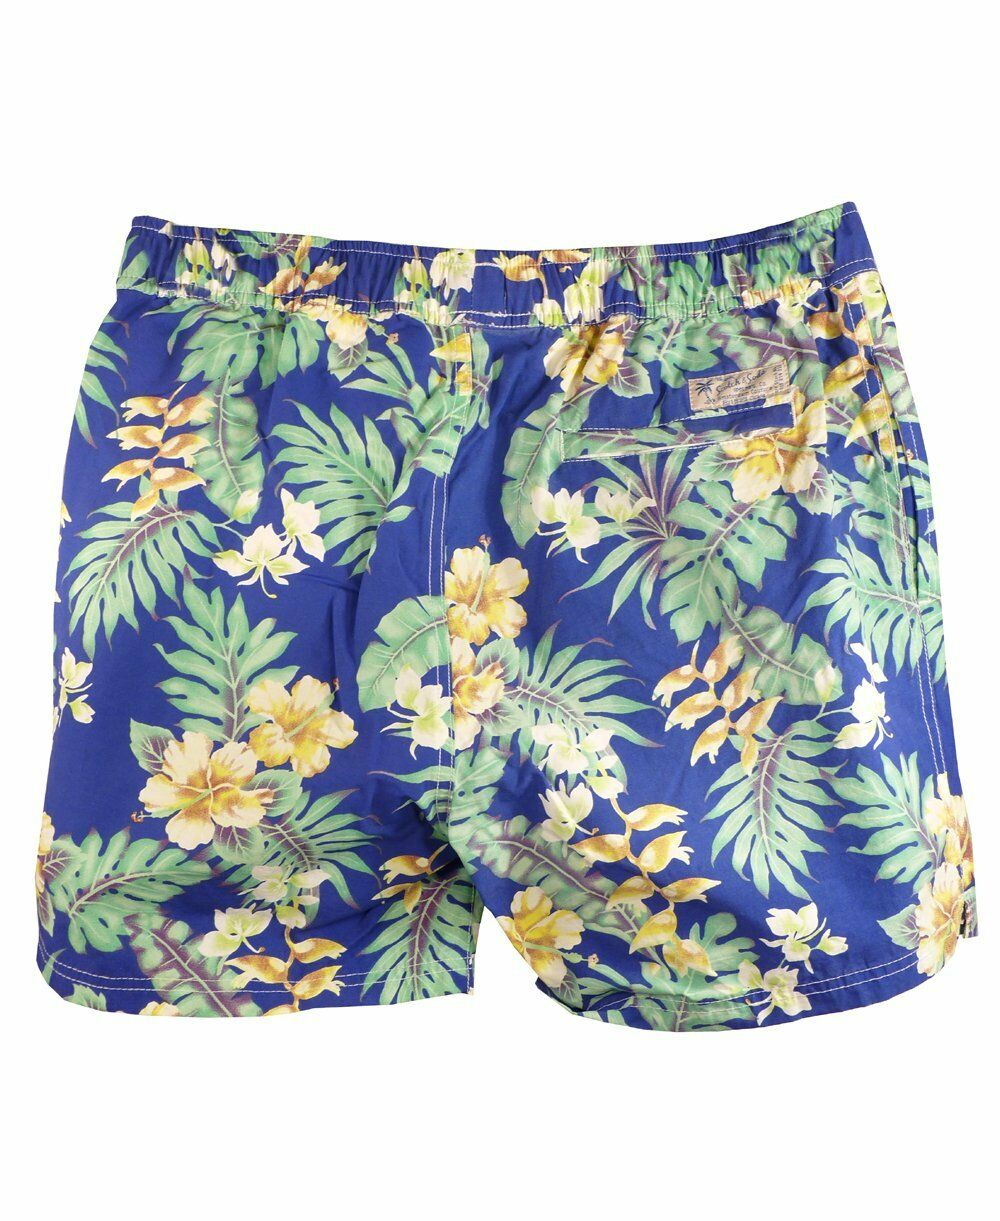 Scotch & Soda bluee & Green Floral Swim Shorts Size M Medium New with Tags